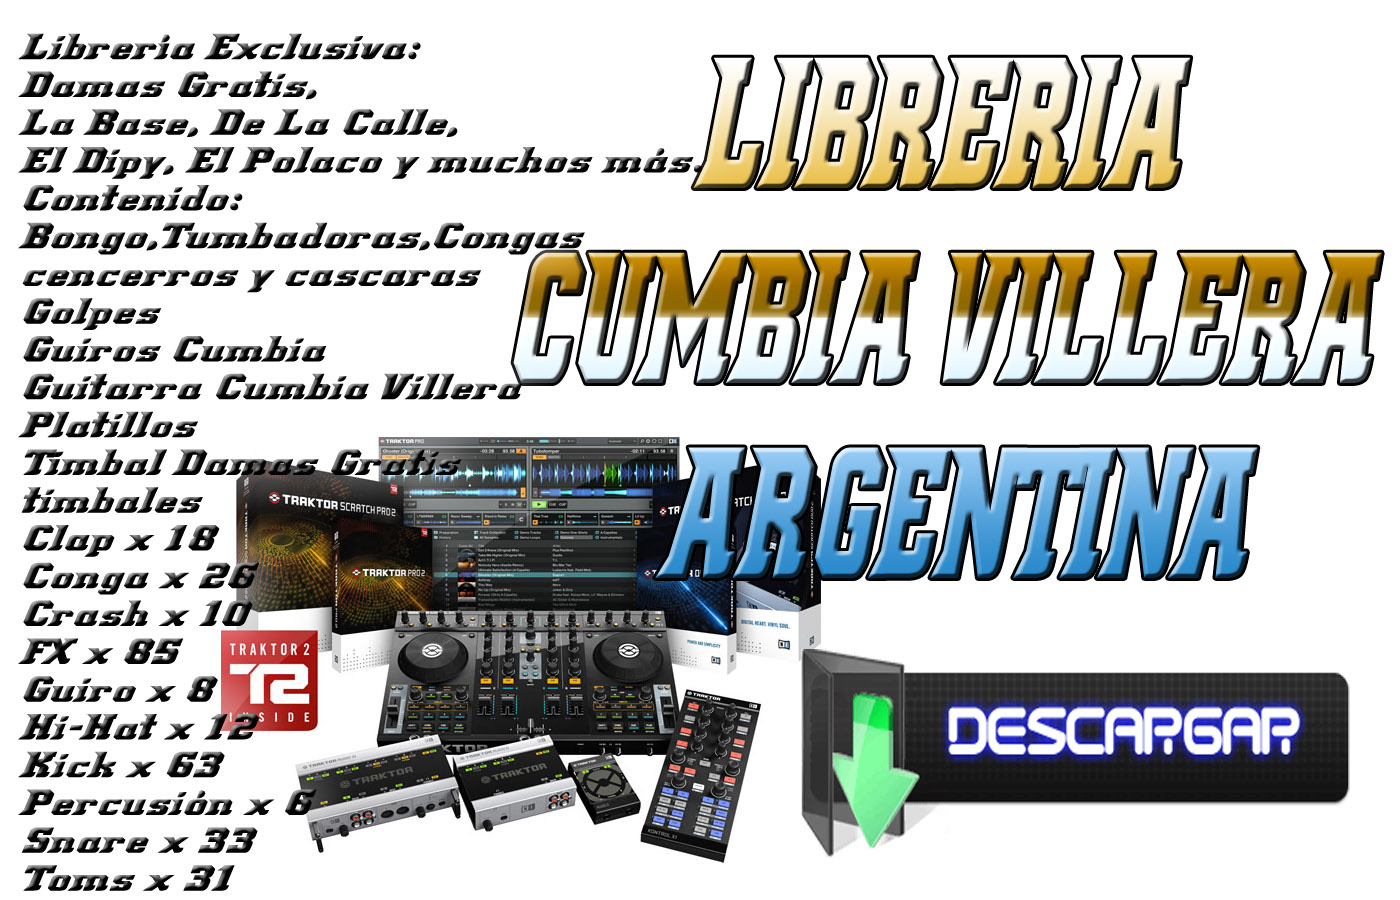 Descargar pack de cumbias rmx para dj 2gb gratis youtube.